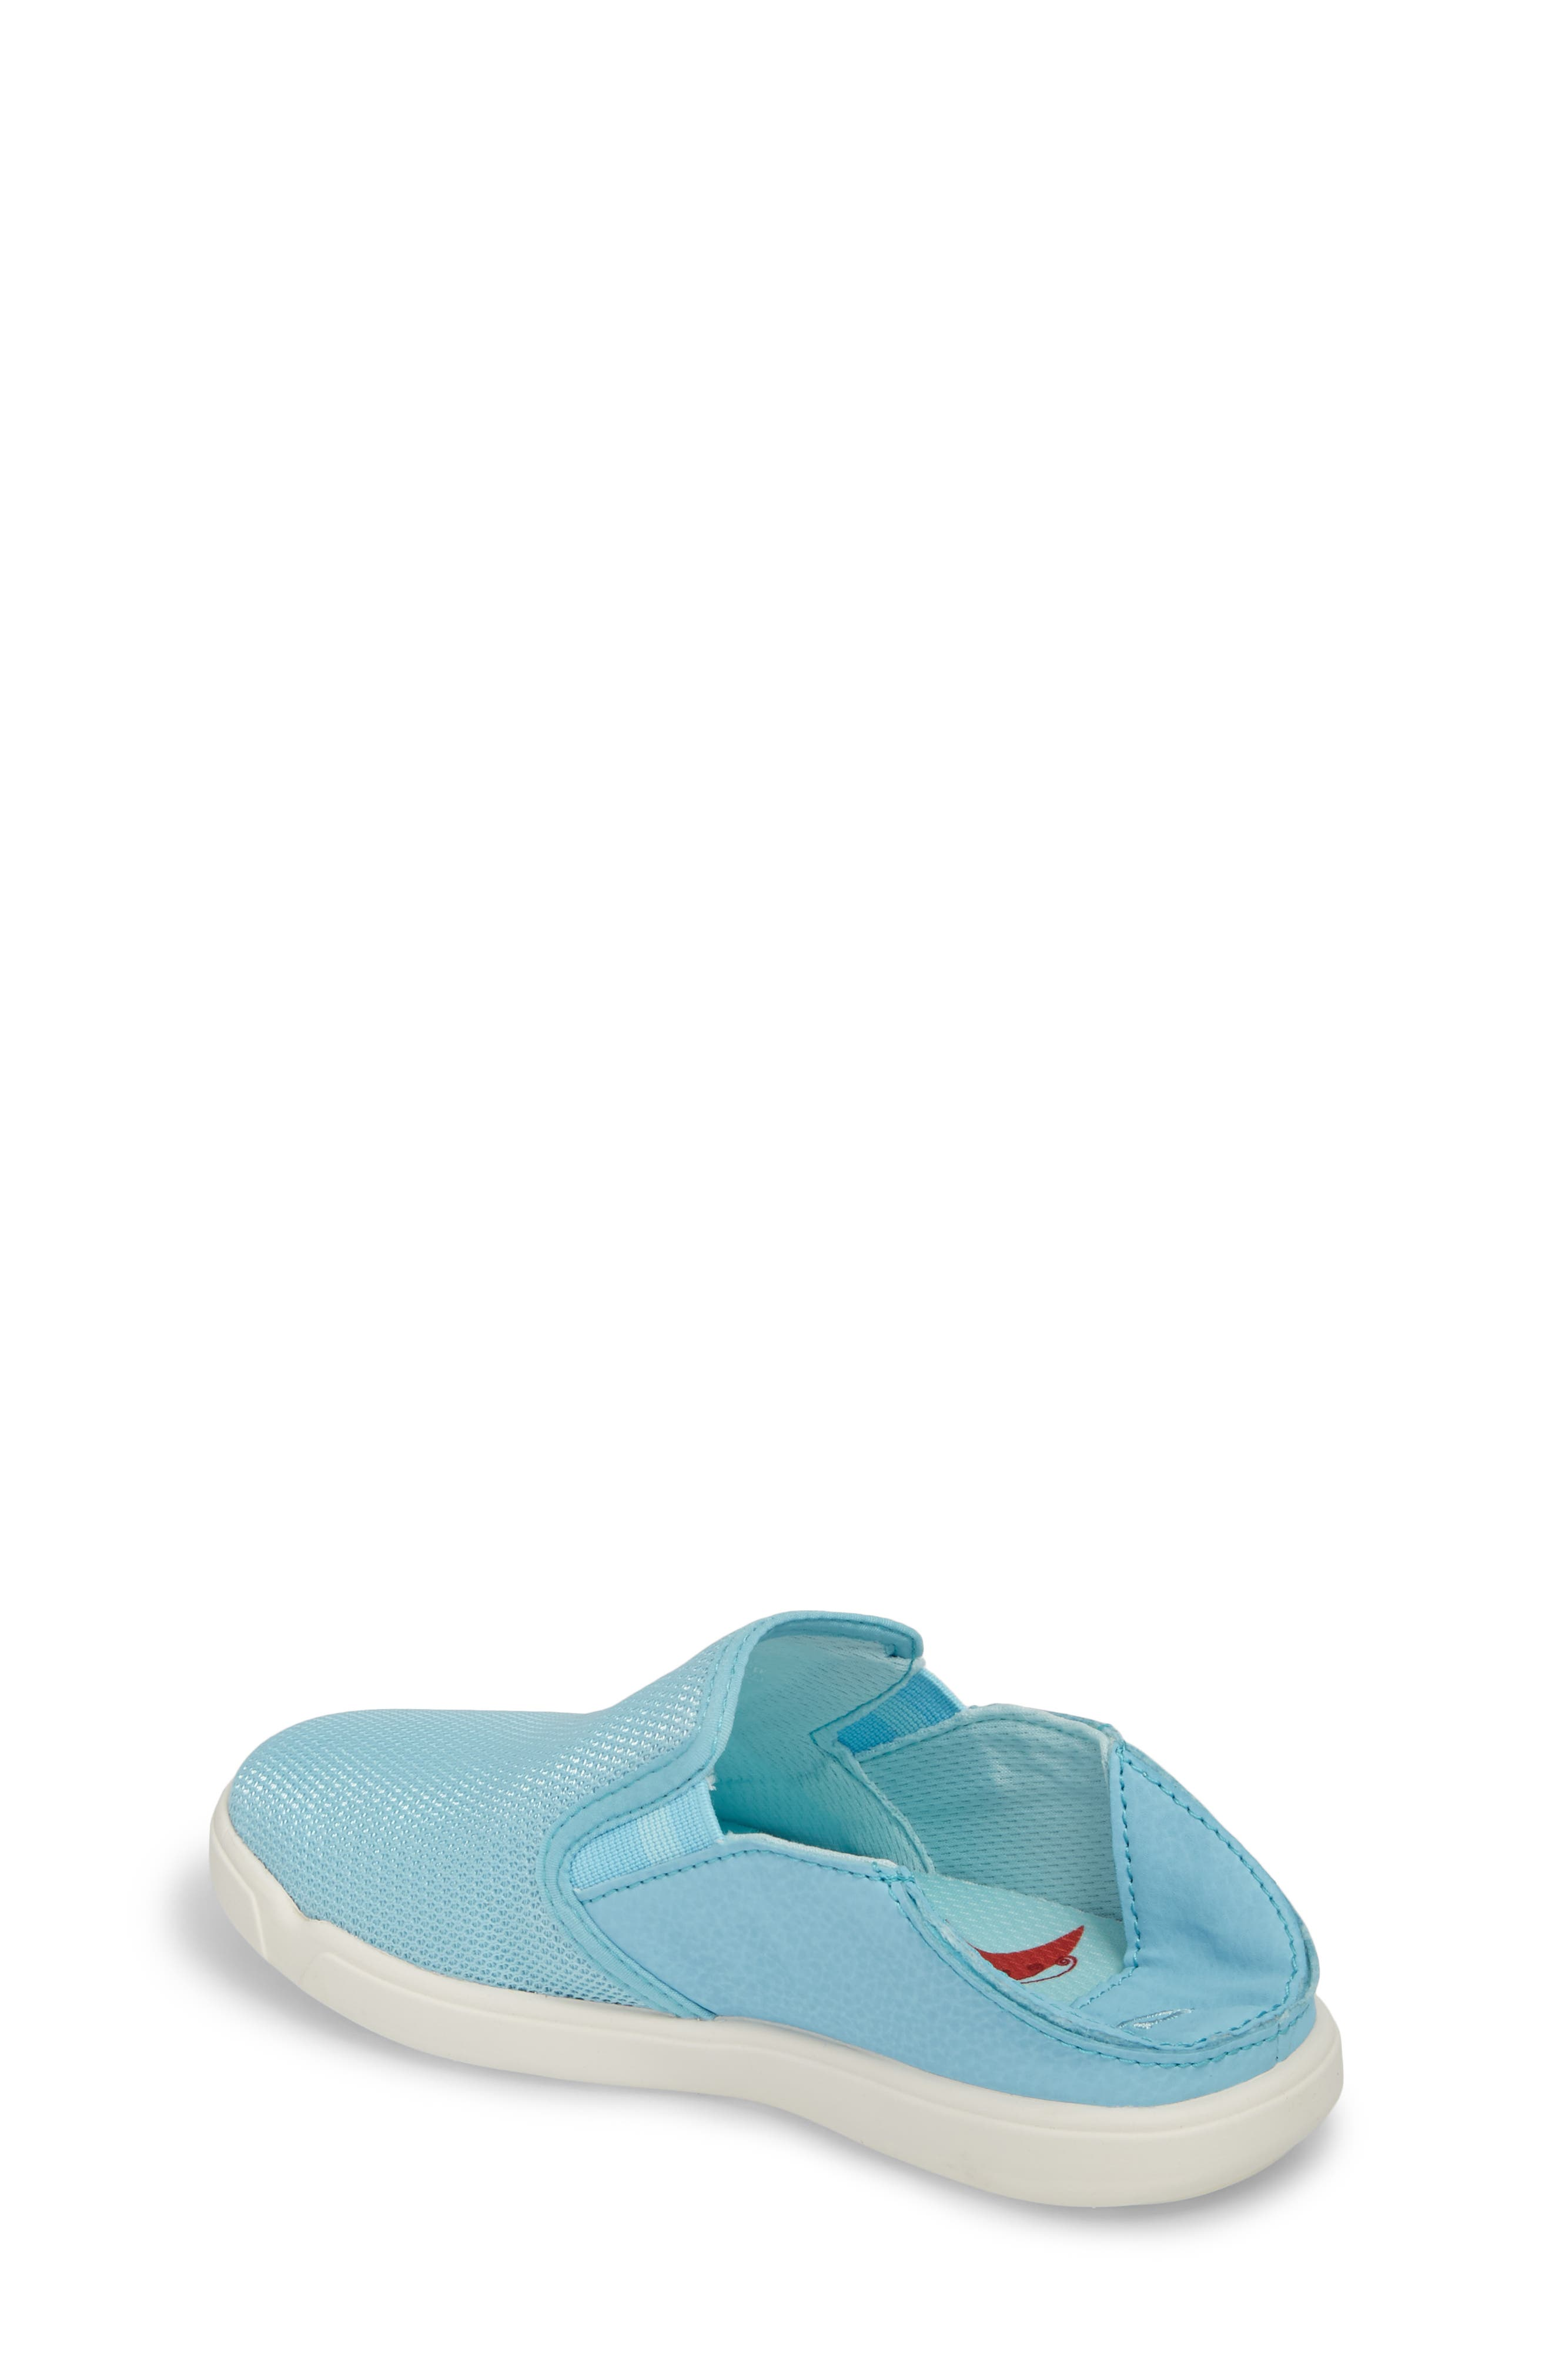 Pehuea Maka Collapsible Slip-On,                             Alternate thumbnail 2, color,                             Cotton Candy/ Clearwater